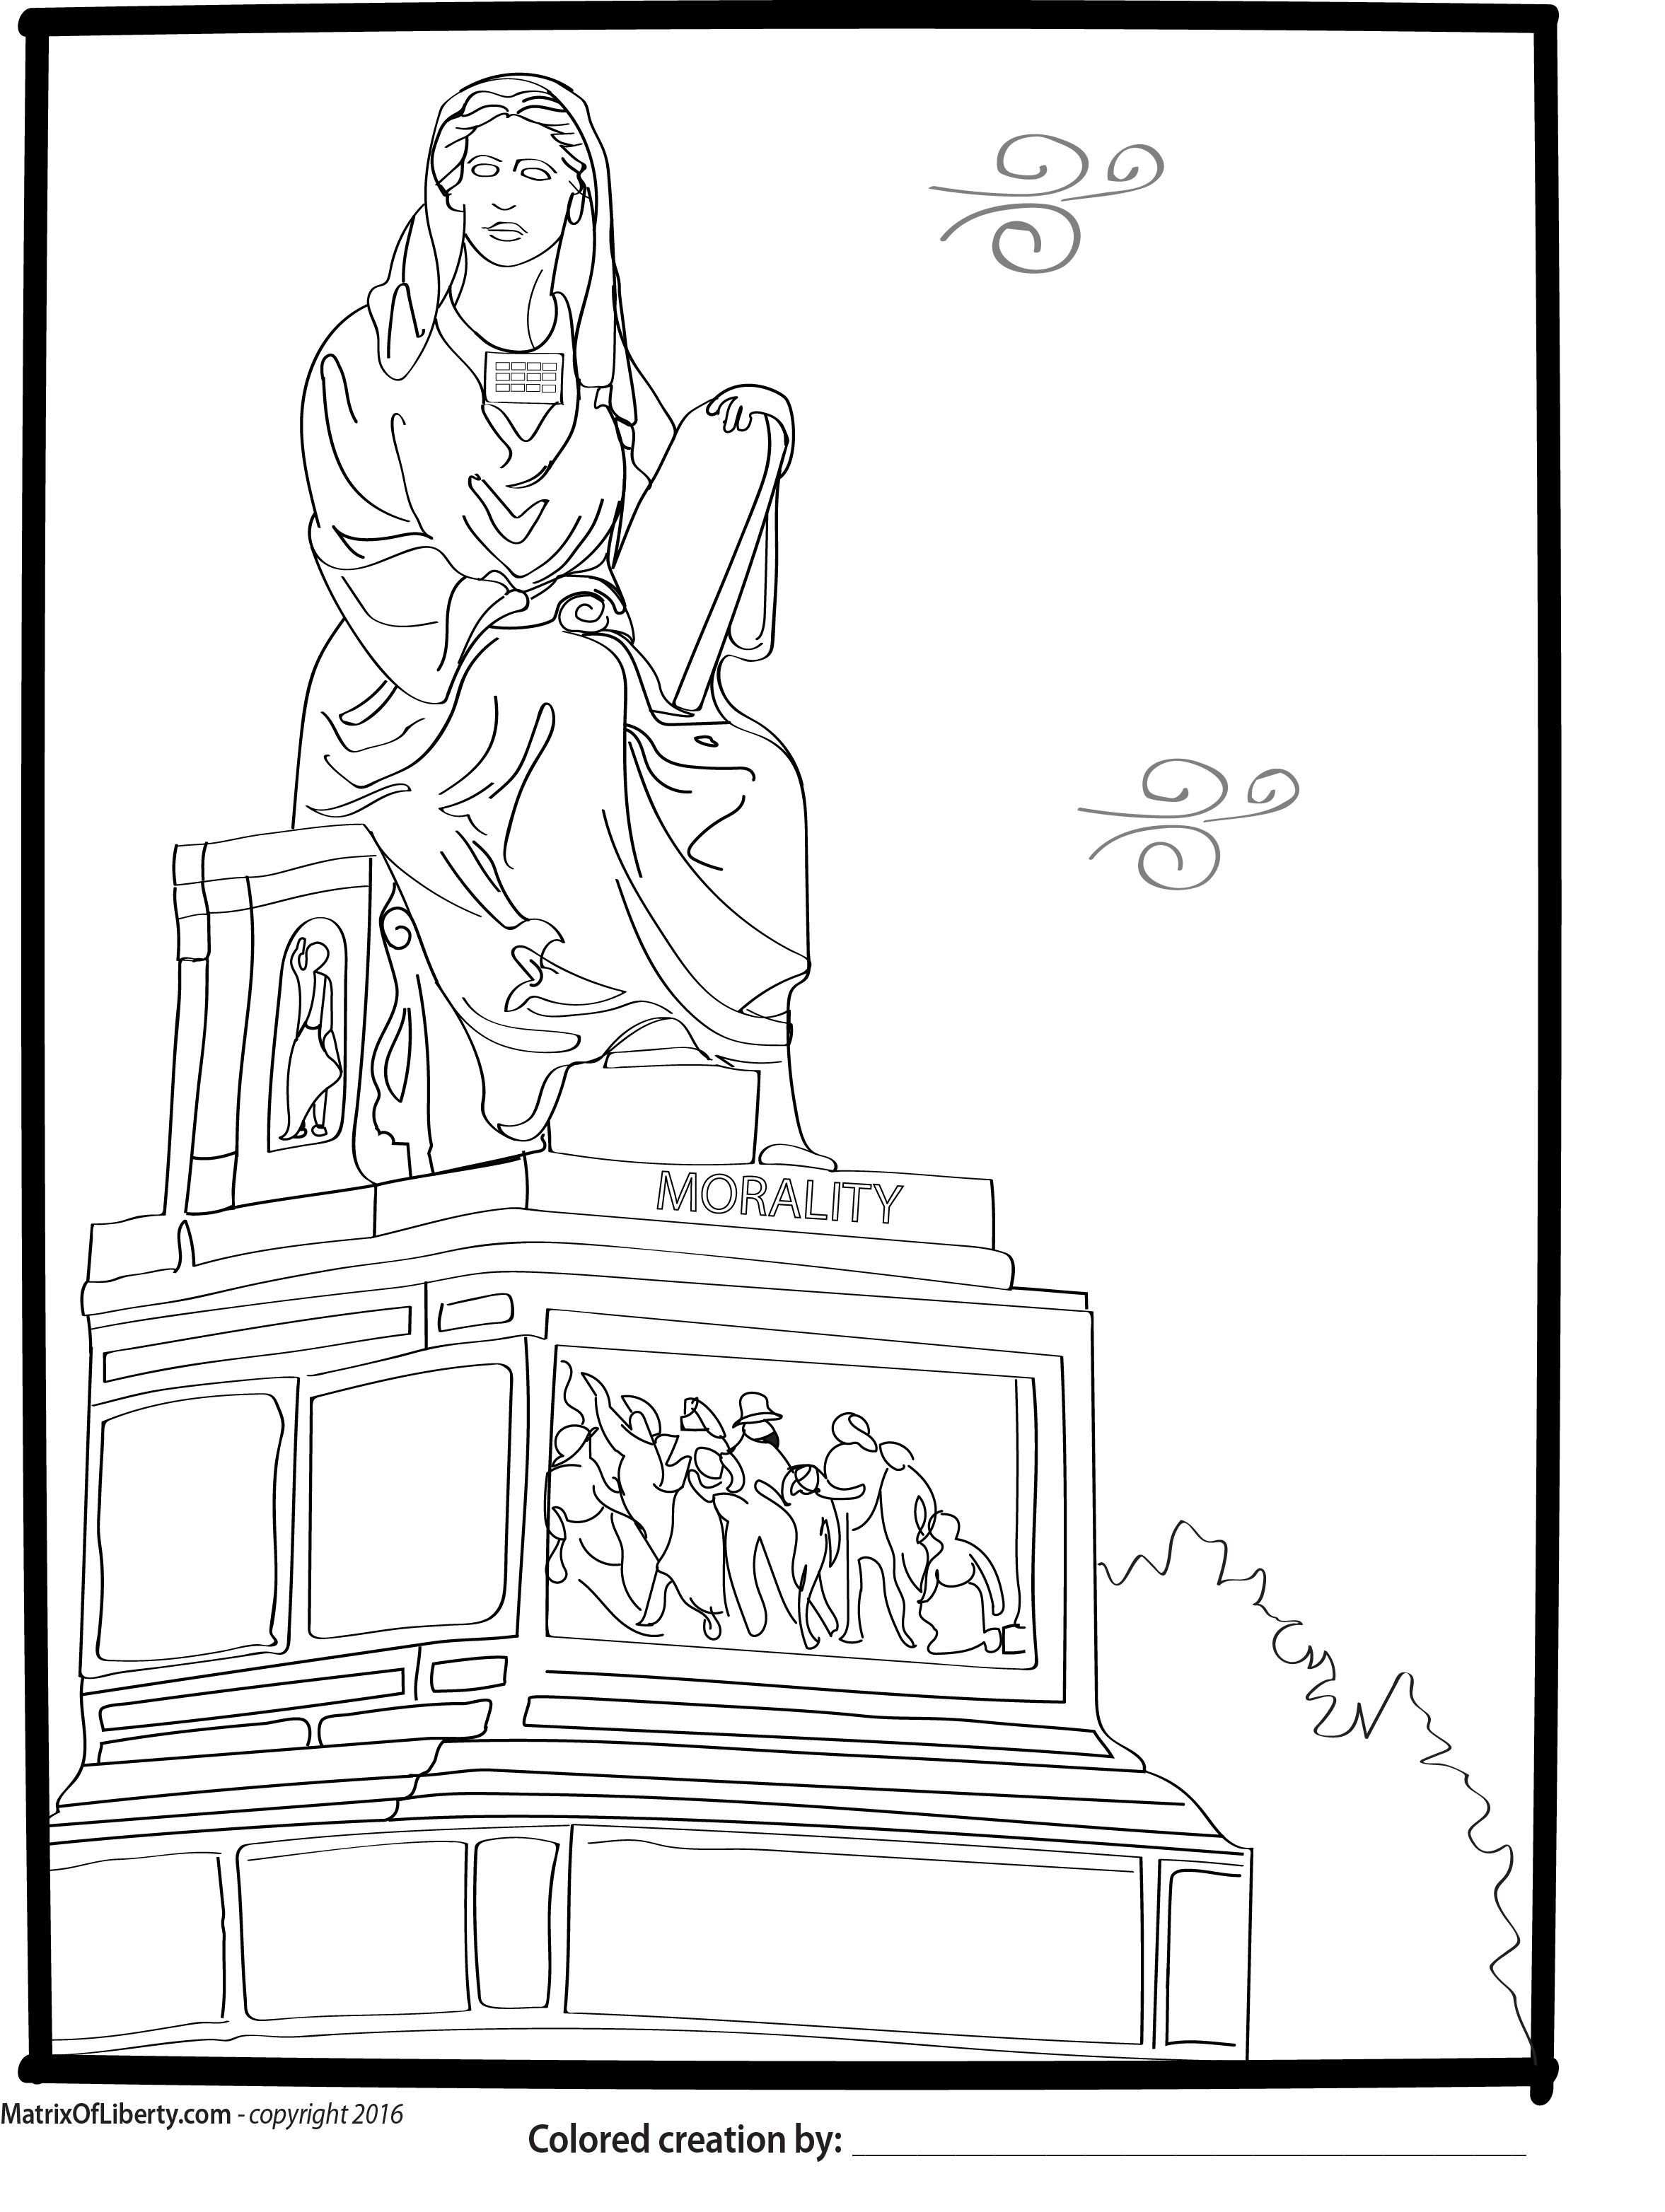 The figure of morality is depicted by a woman wearing the sacred Eli the Priest Coloring Page Holy Orders Coloring Page Catholic Coloring Pages